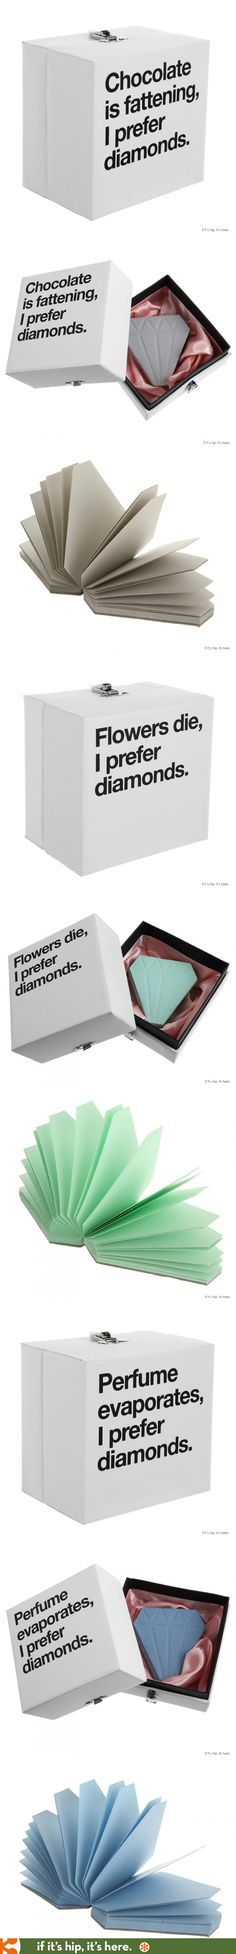 In the case of these Diamond shaped notepads by Papelaria, the packaging is what makes the product so much fun.